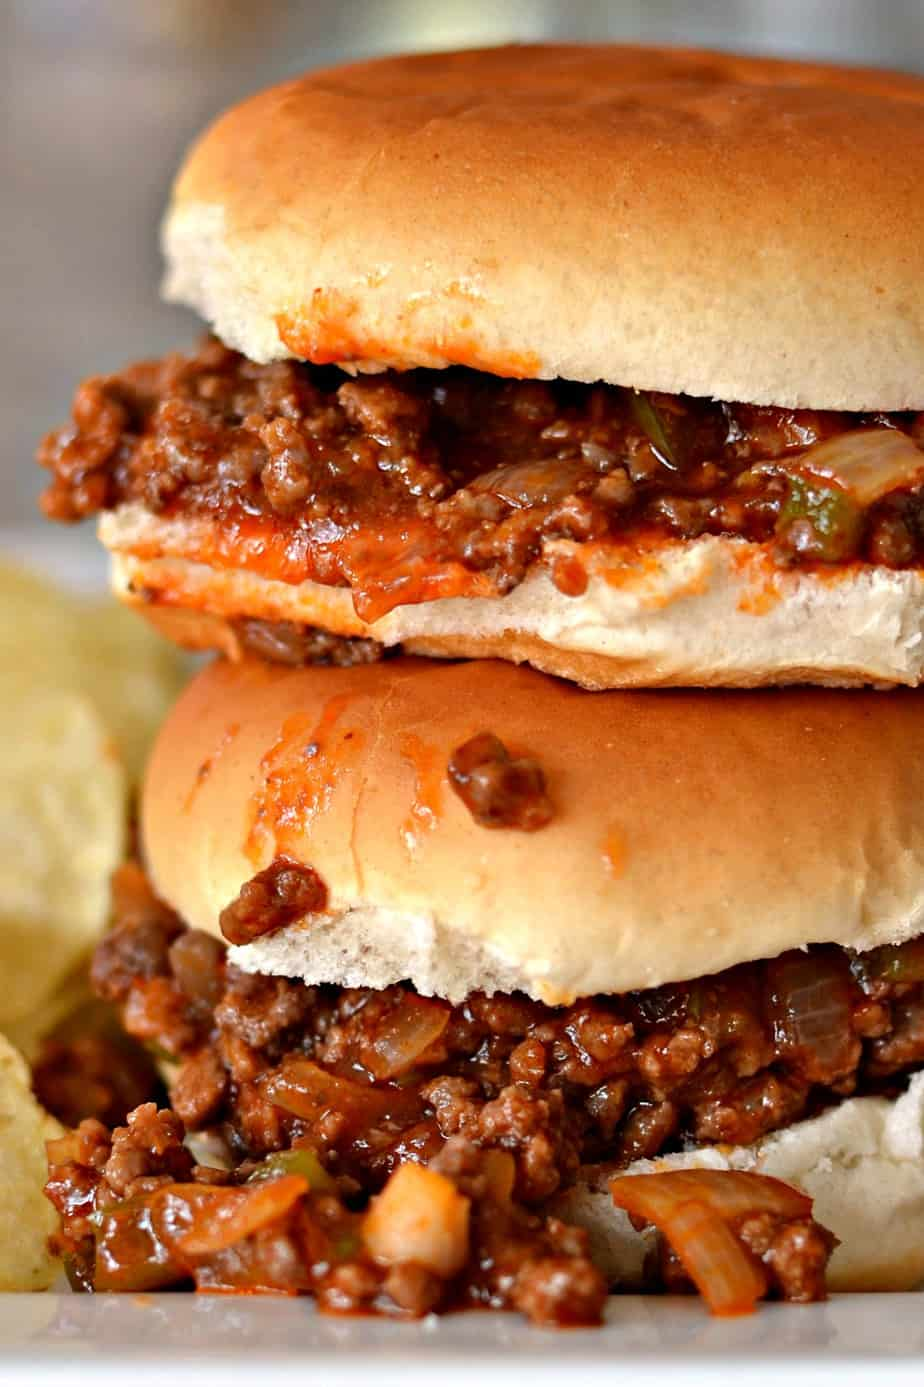 This Homemade Sloppy Joe recipe requires limited hands on time and is ready in under 30 minutes.